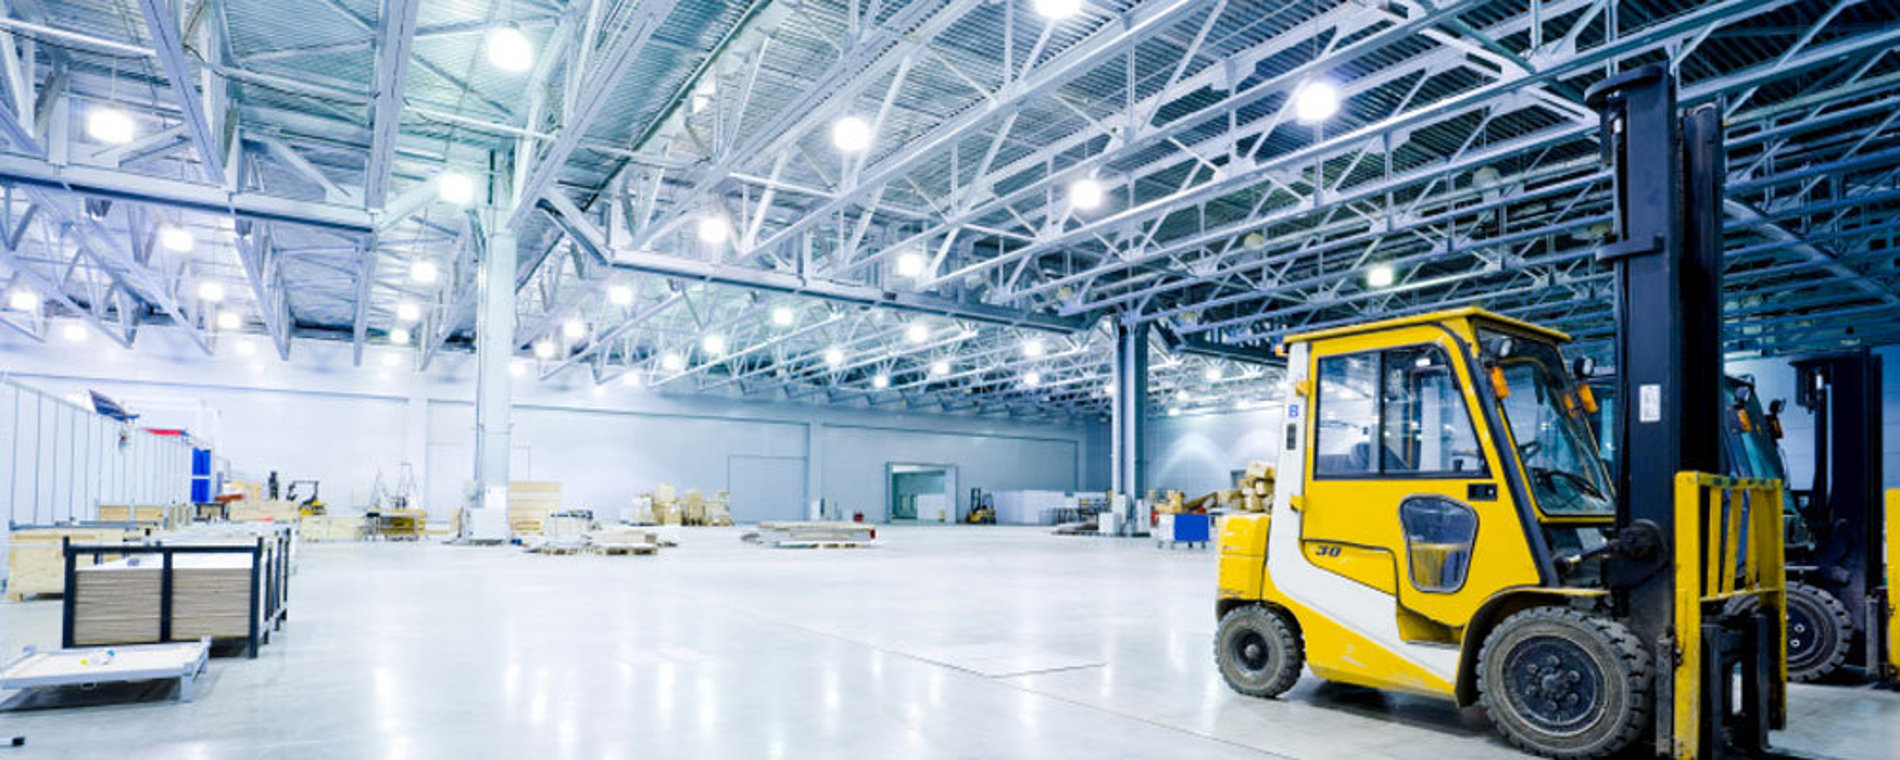 warehouse-led-lighting-bg.jpg